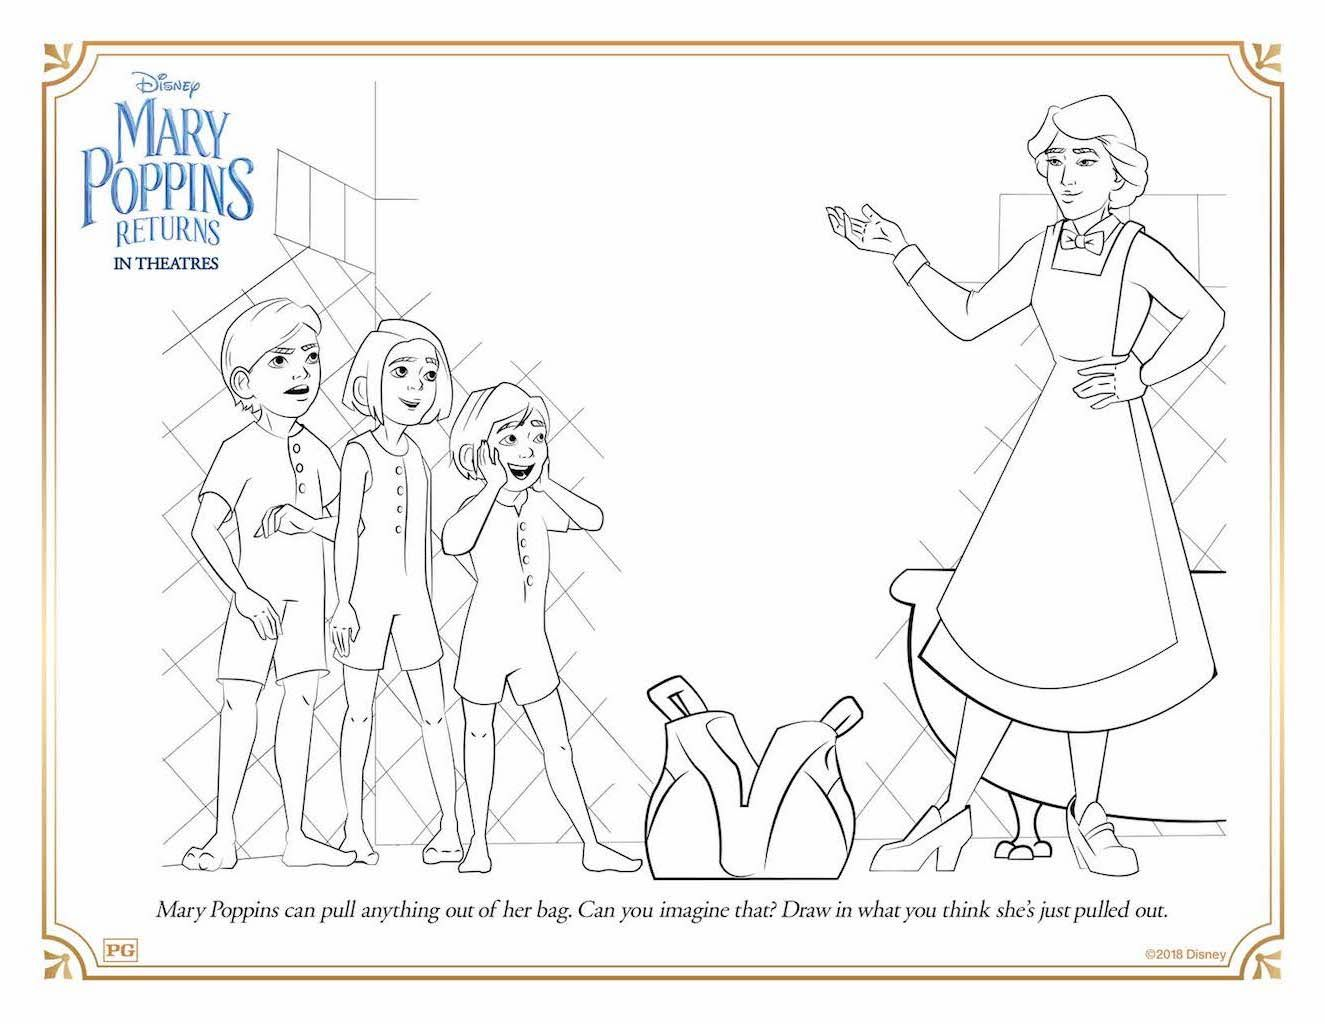 Free Printable Mary Poppins Returns Coloring Activity Sheets Cartoon Coloring Pages Coloring Pages Disney Coloring Pages [ 1024 x 1325 Pixel ]